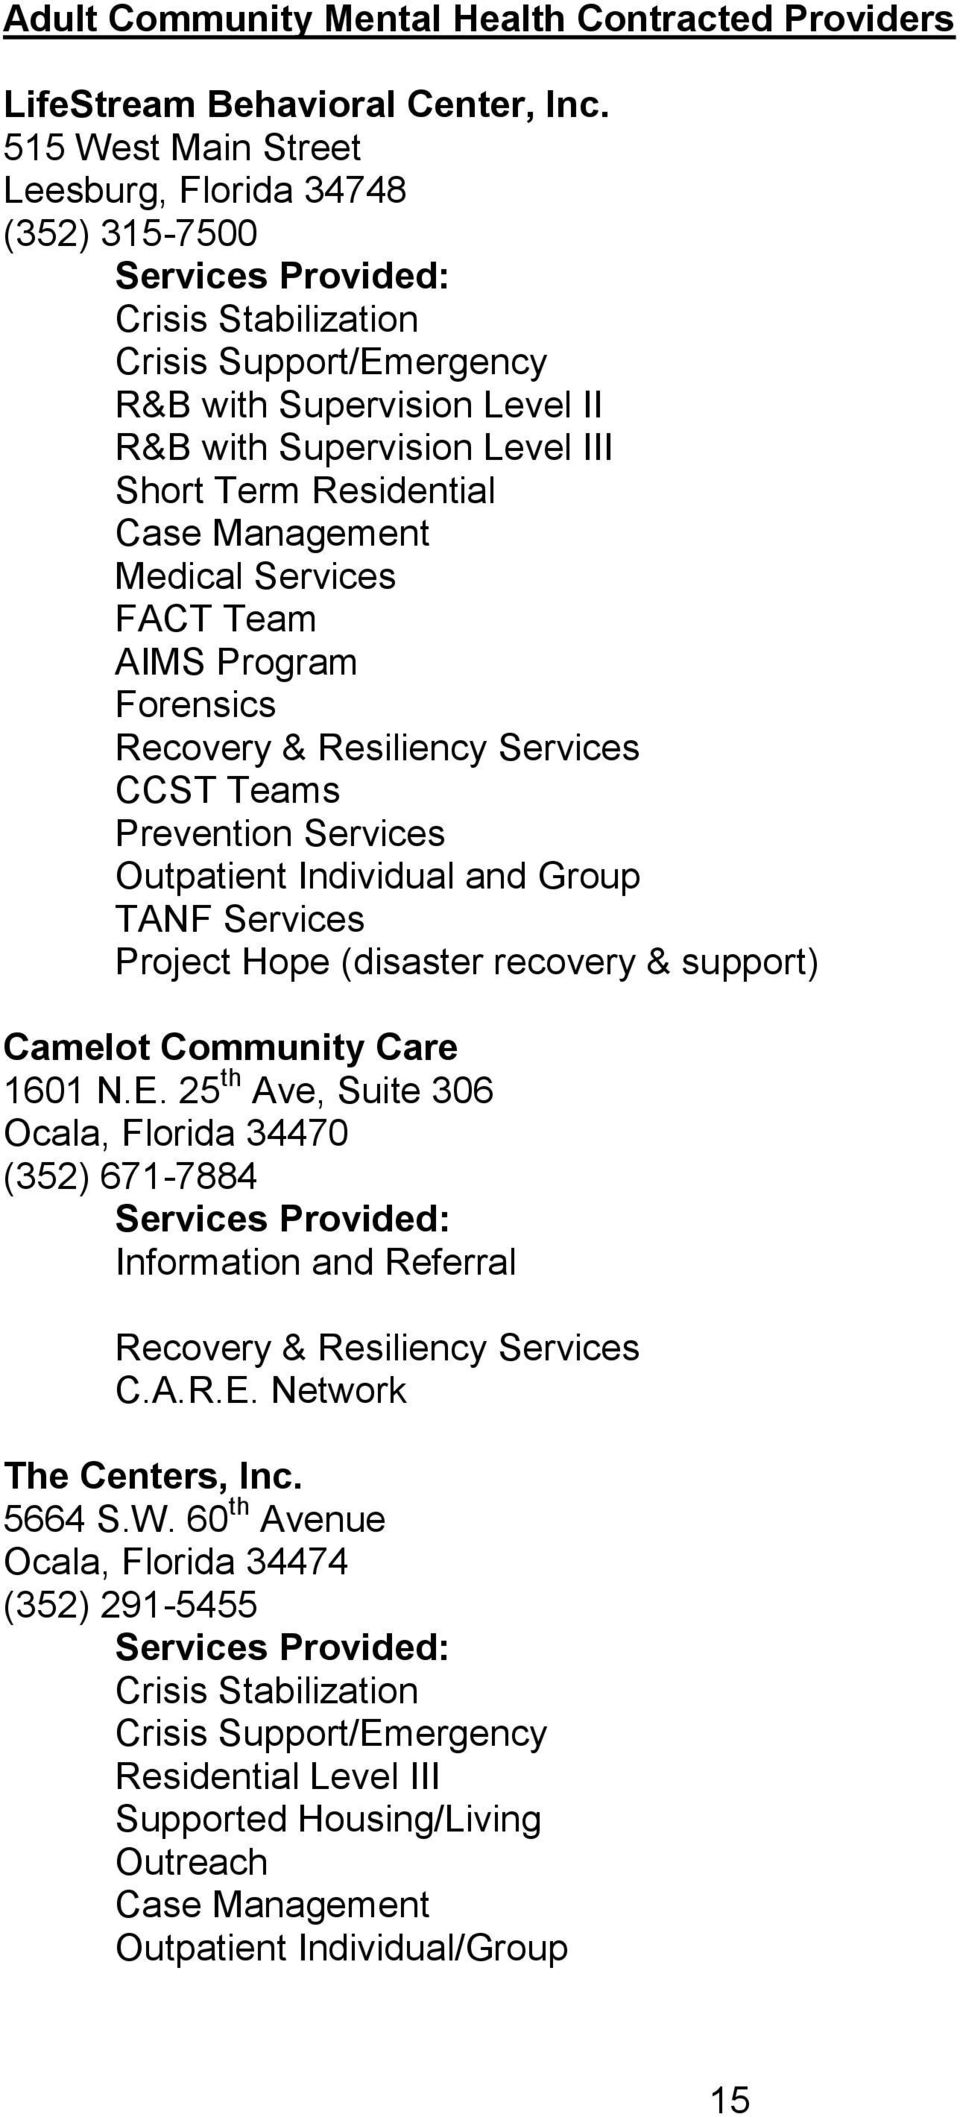 Program Forensics Recovery & Resiliency Services CCST Teams Prevention Services Outpatient Individual and Group TANF Services Project Hope (disaster recovery & support) Camelot Community Care 1601 N.